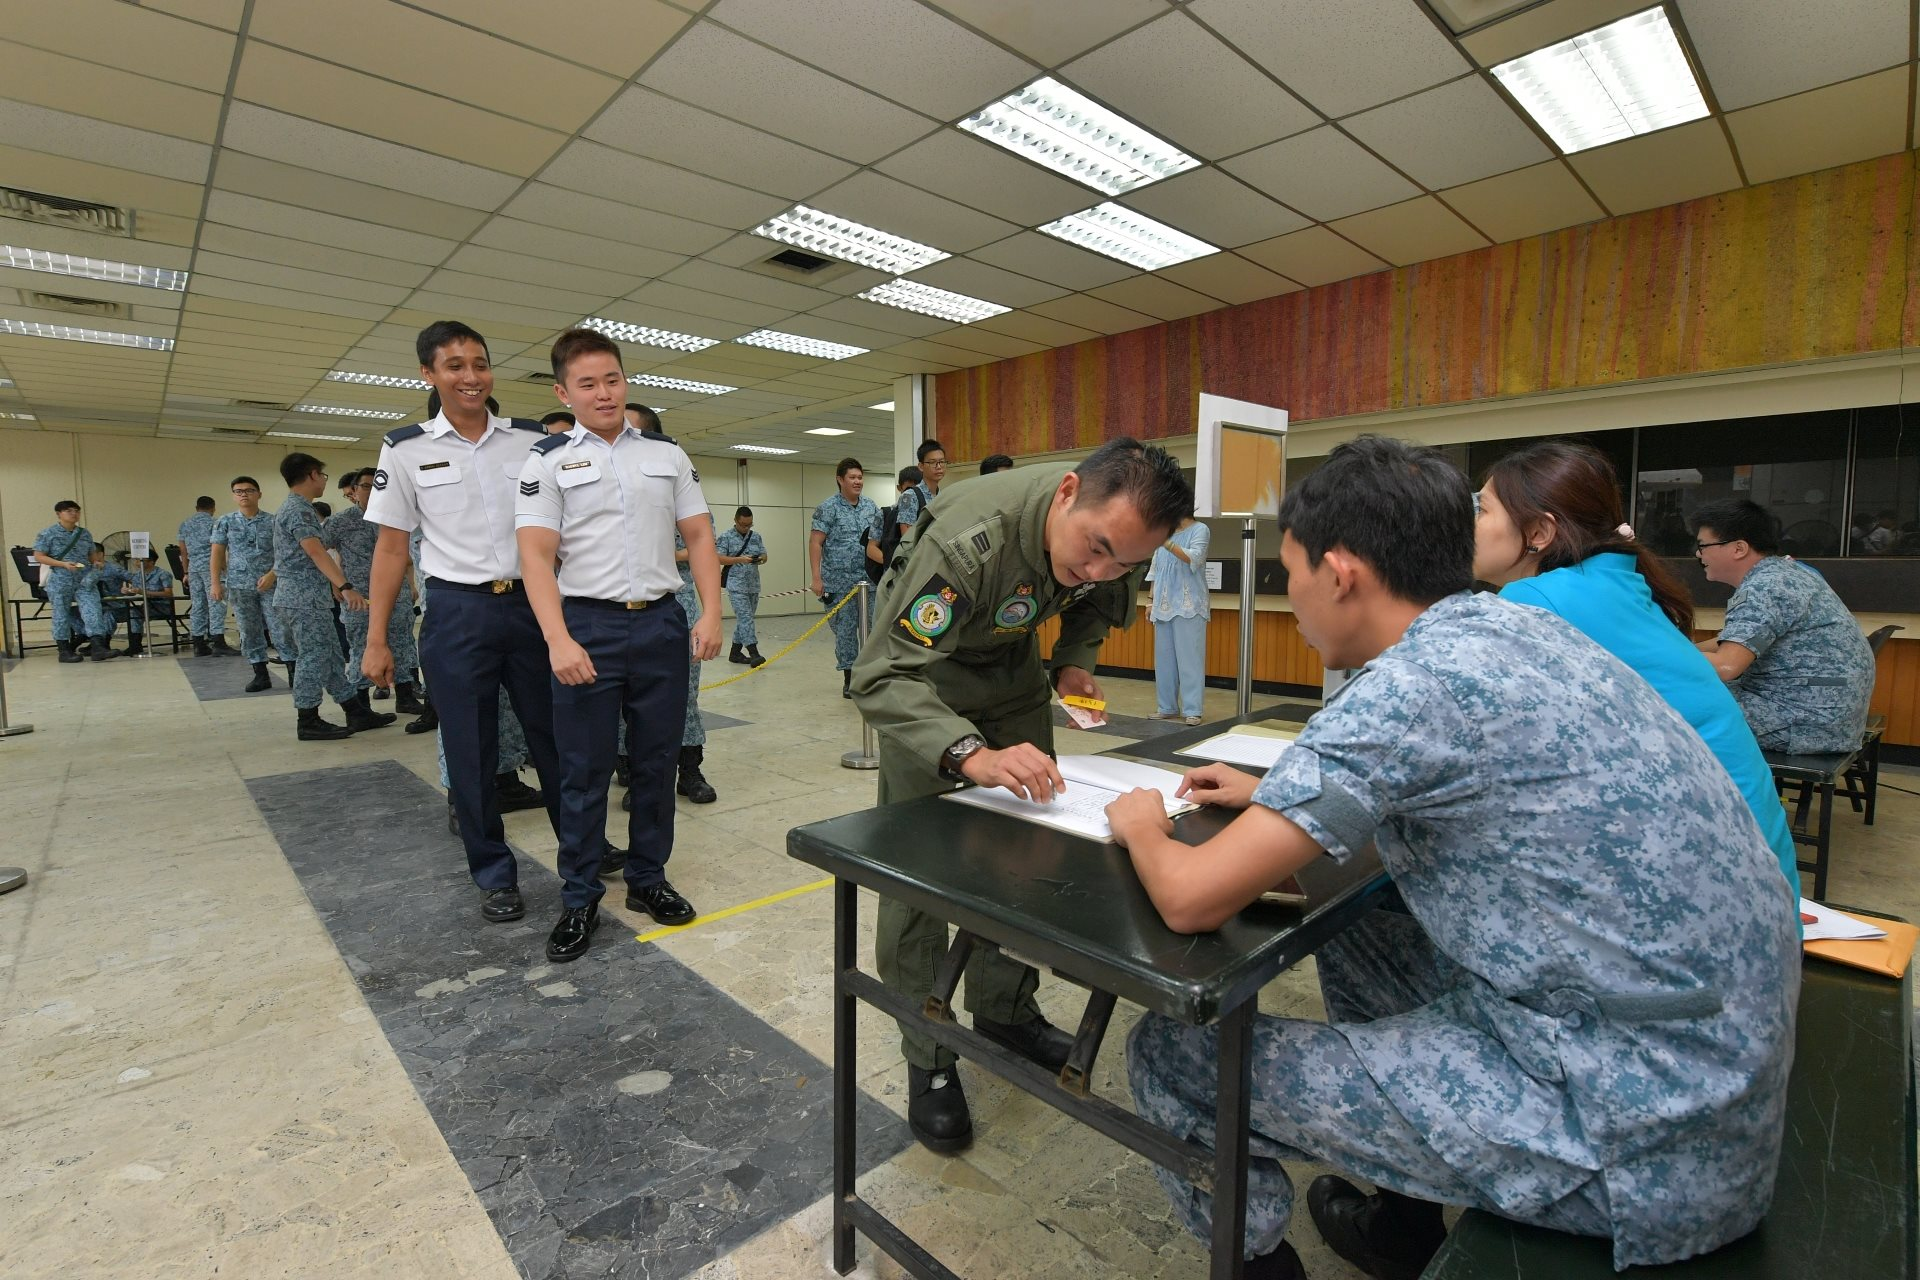 RSAF demonstrates readiness through mobilisation exercise